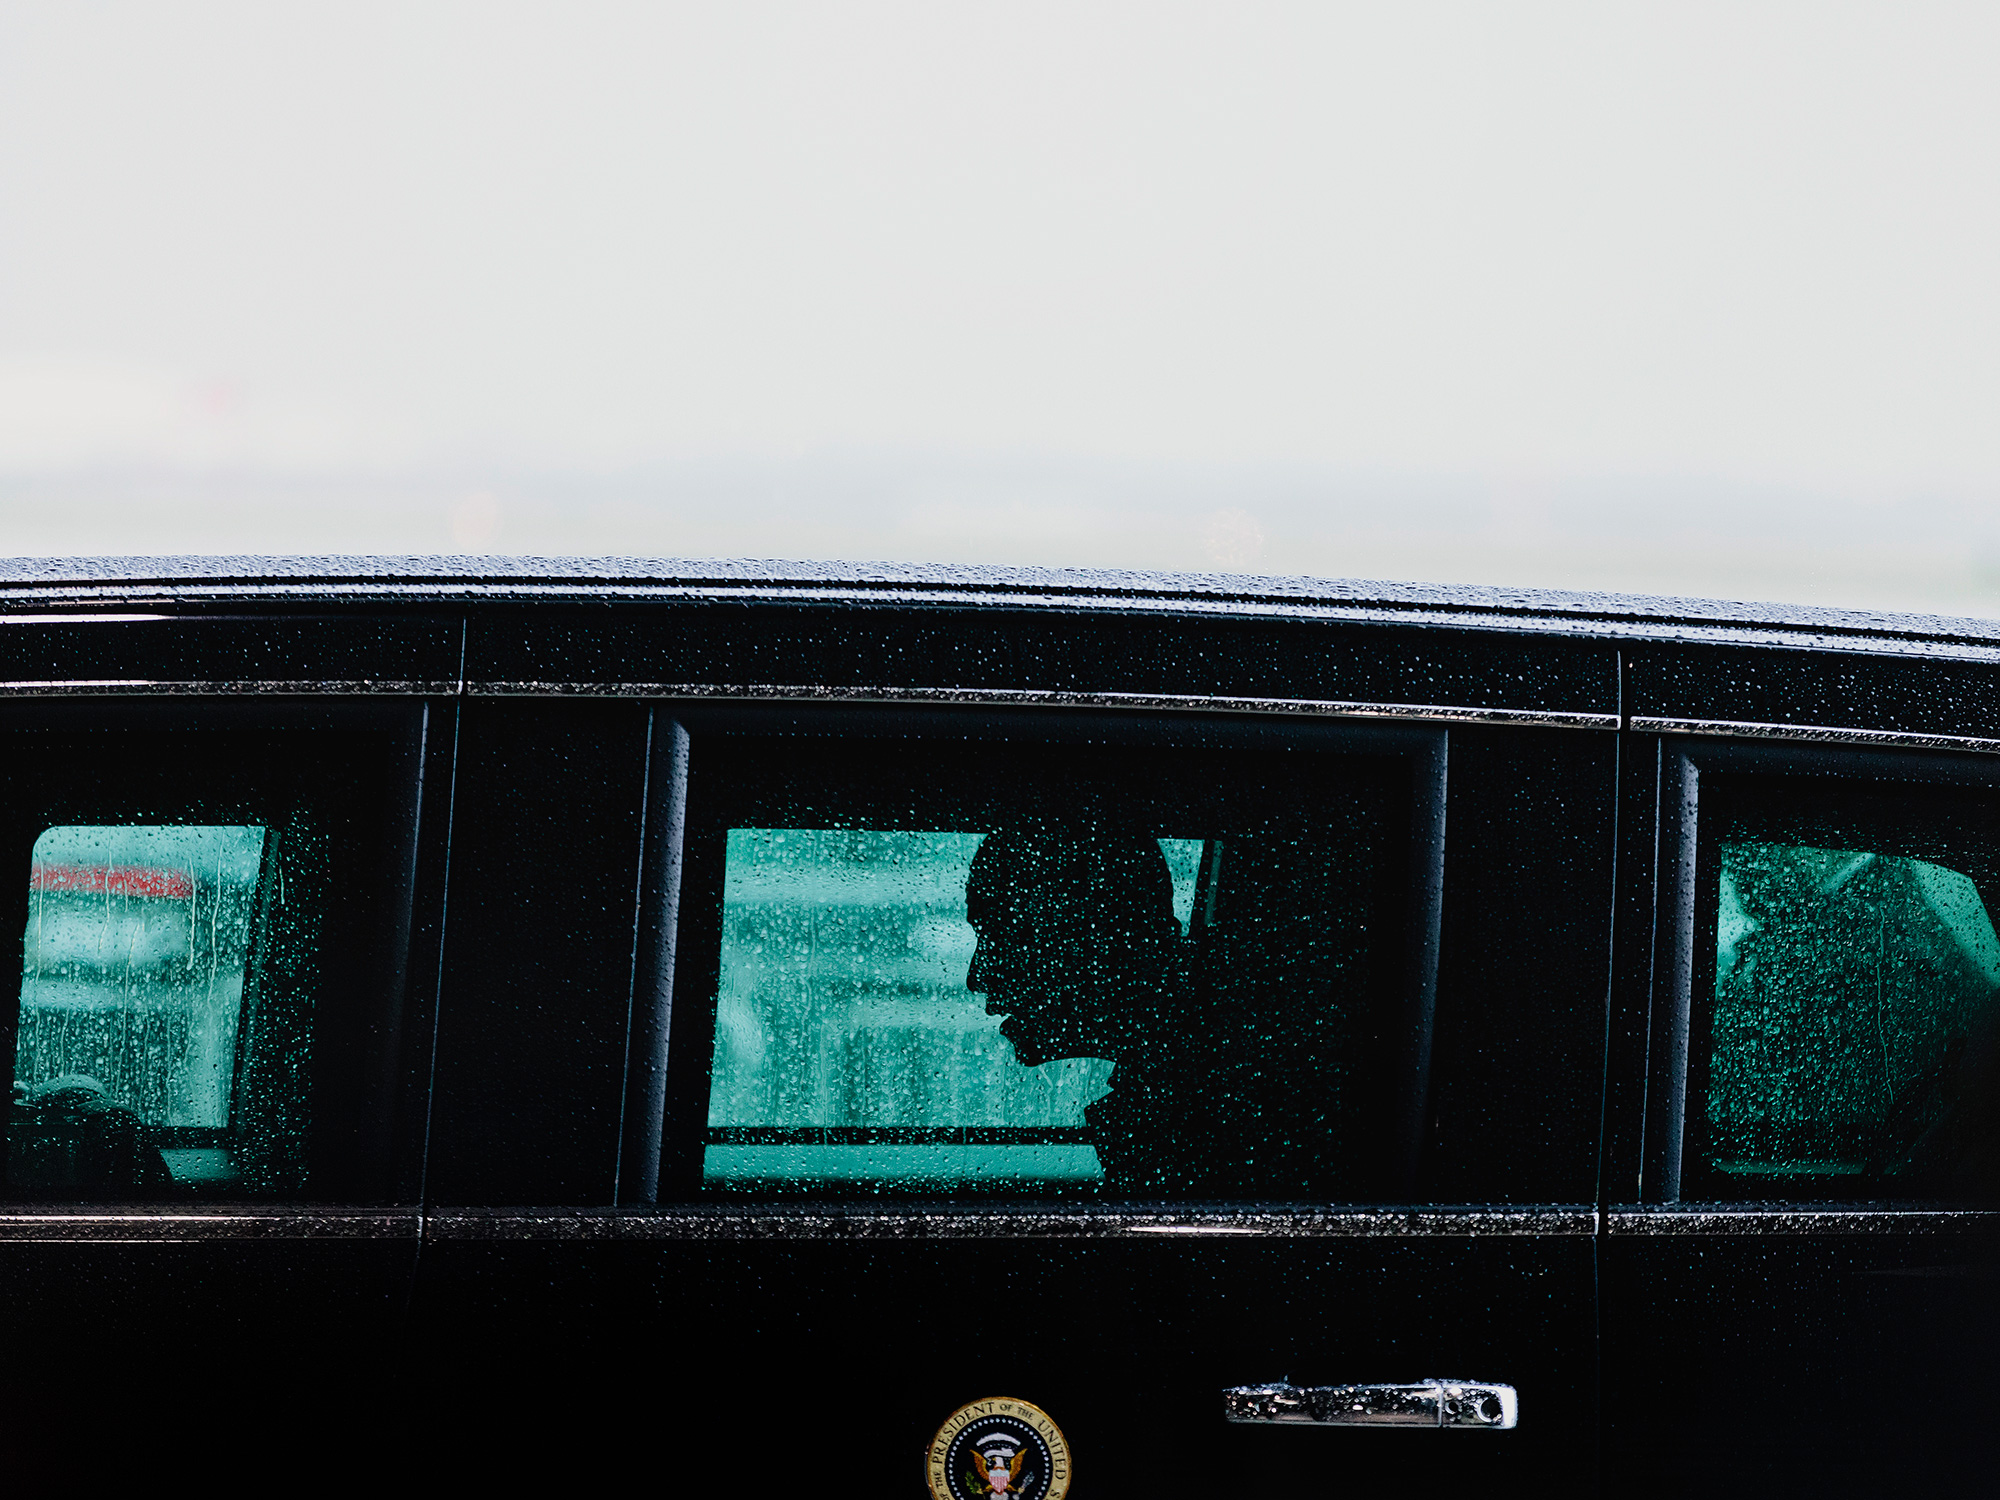 President Barack Obama, photographed in his motorcade at Ellington Field in Houston, Texas by Todd Spoth.